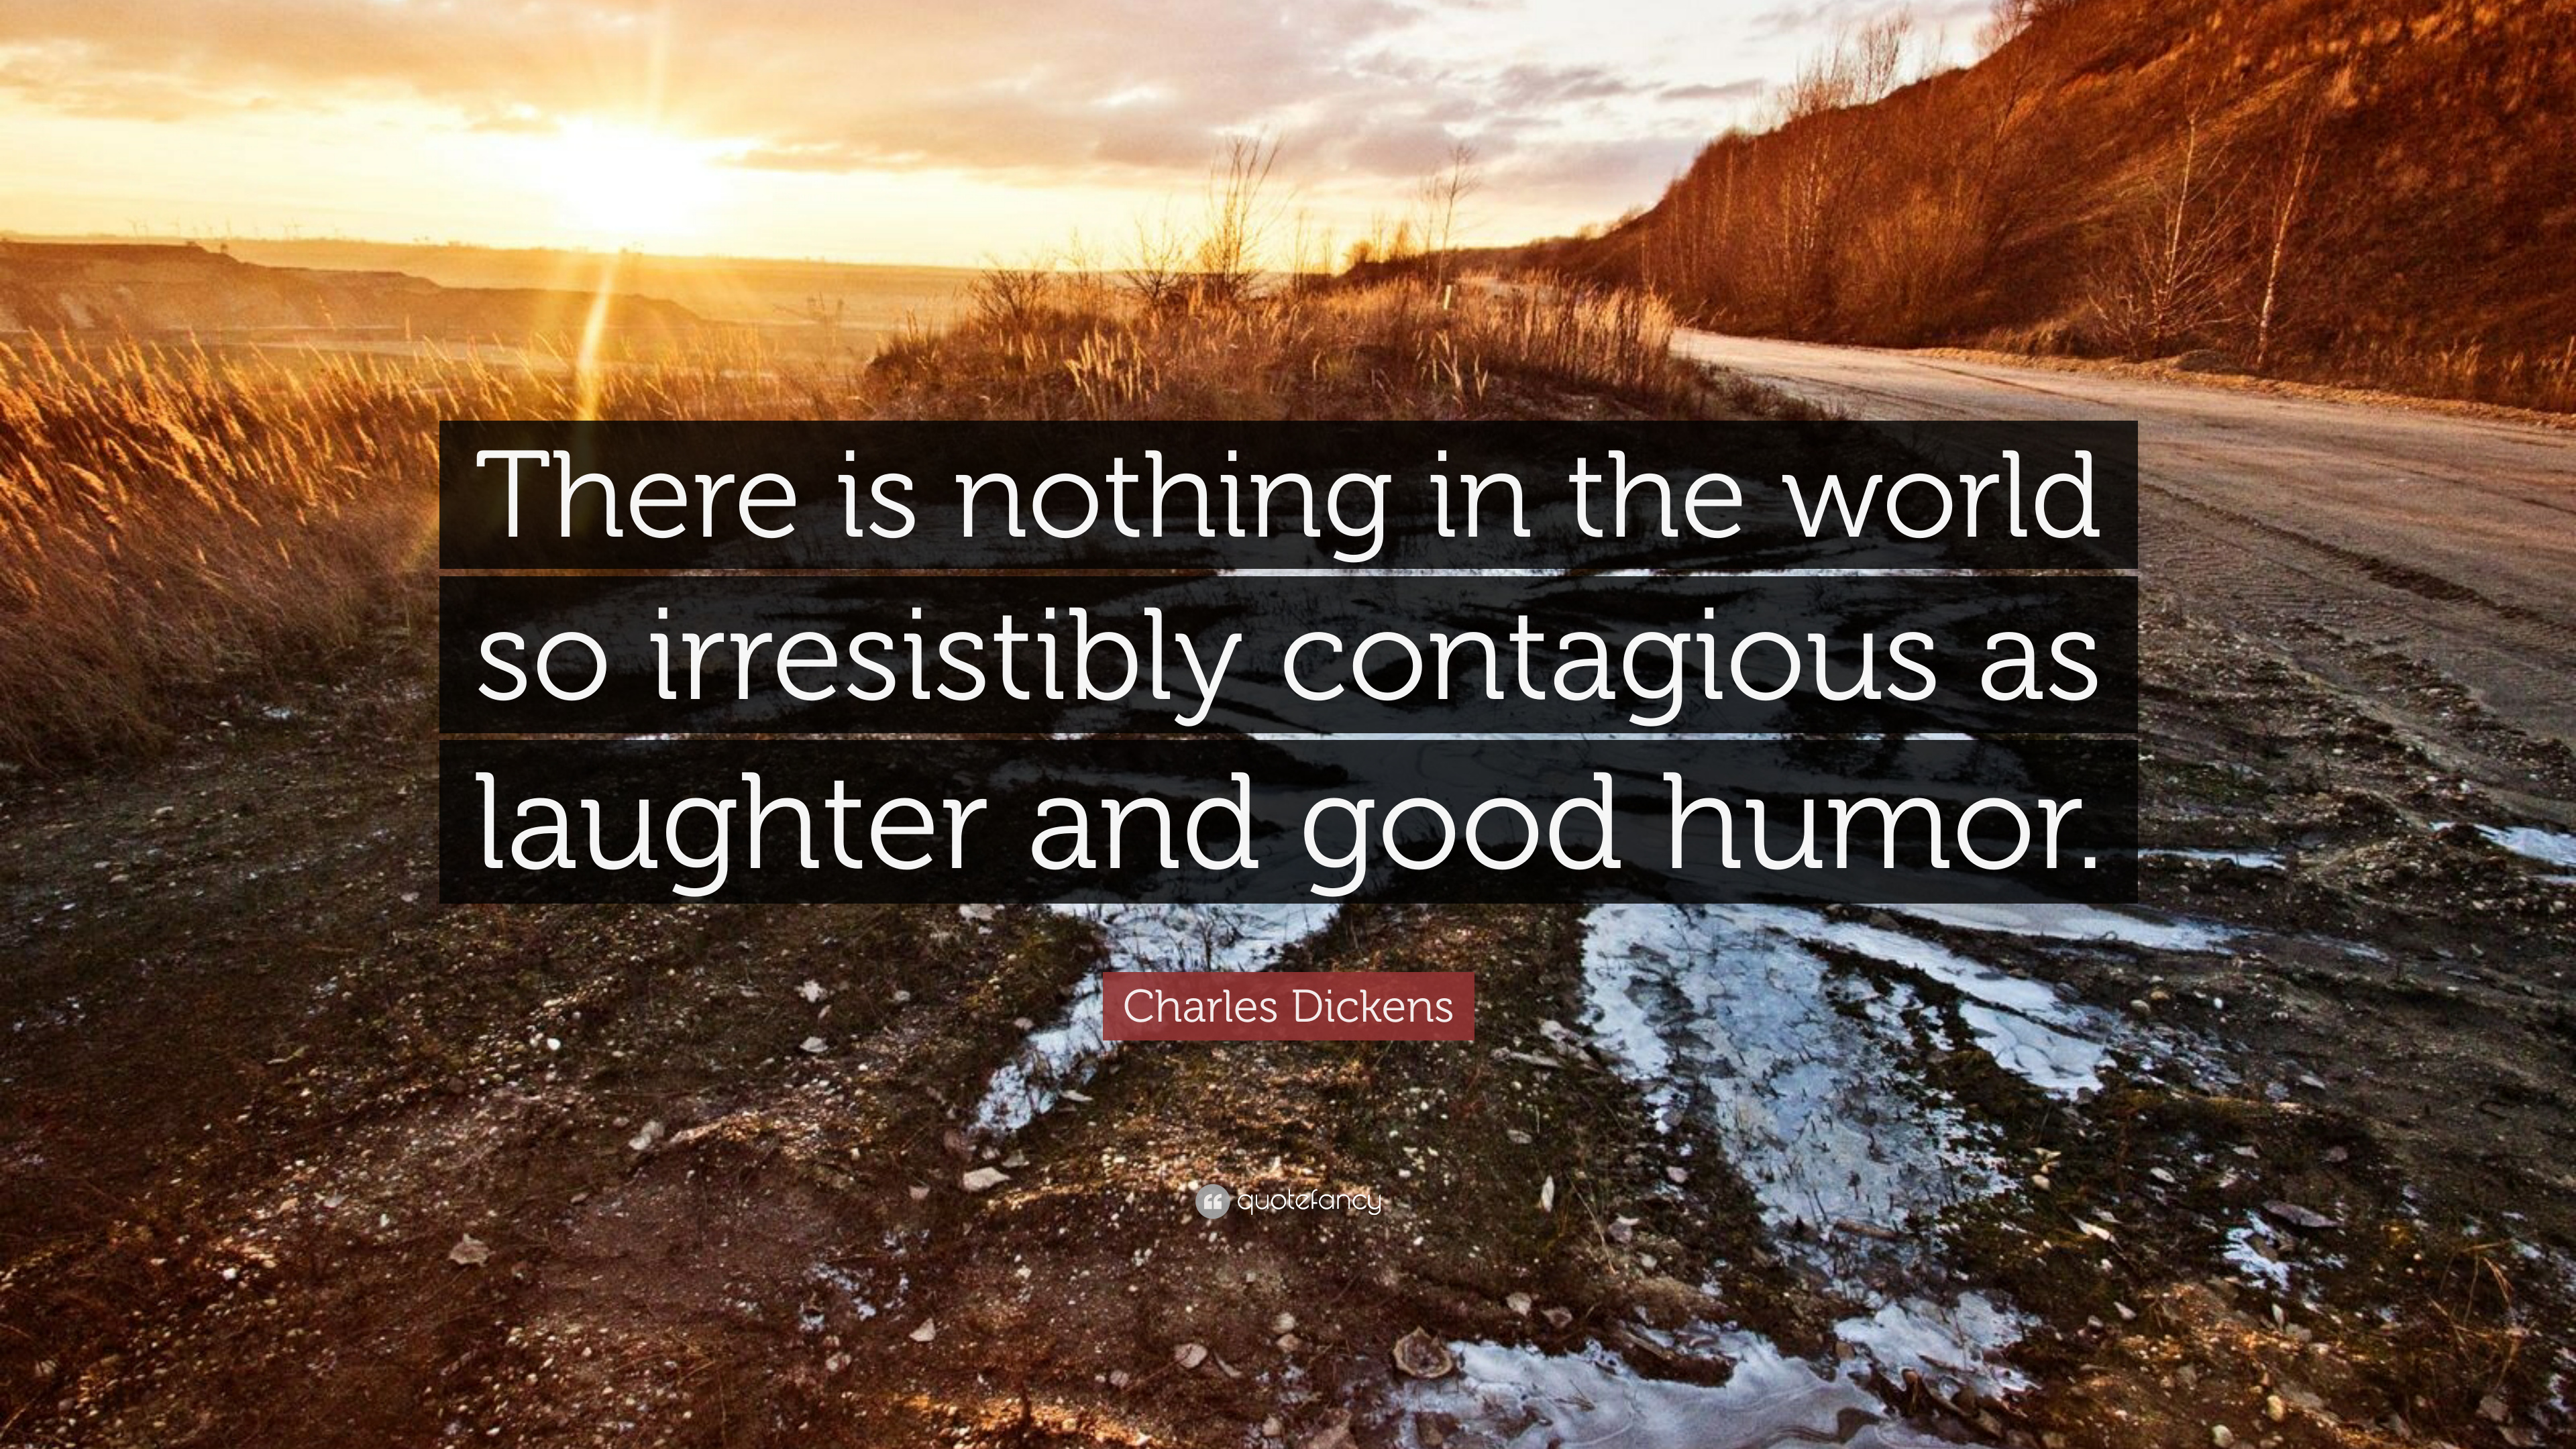 nothing there contagious laughter irresistibly humor dickens charles quote wallpapers quotefancy